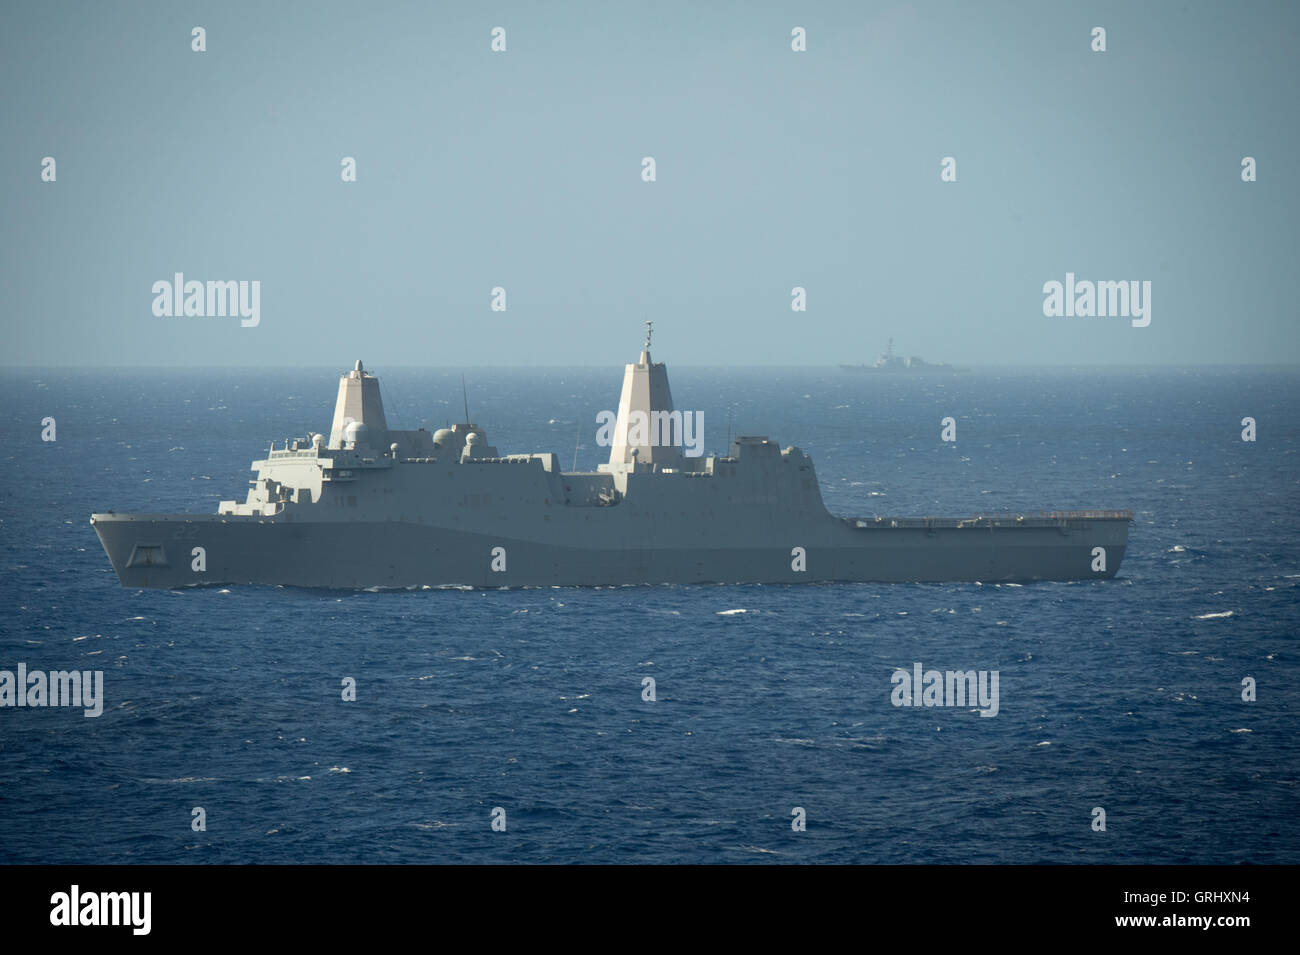 U.S. Navy Amphibious transport dock ship USS San Diego steams in close formation during Rim of the Pacific exercises - Stock Image